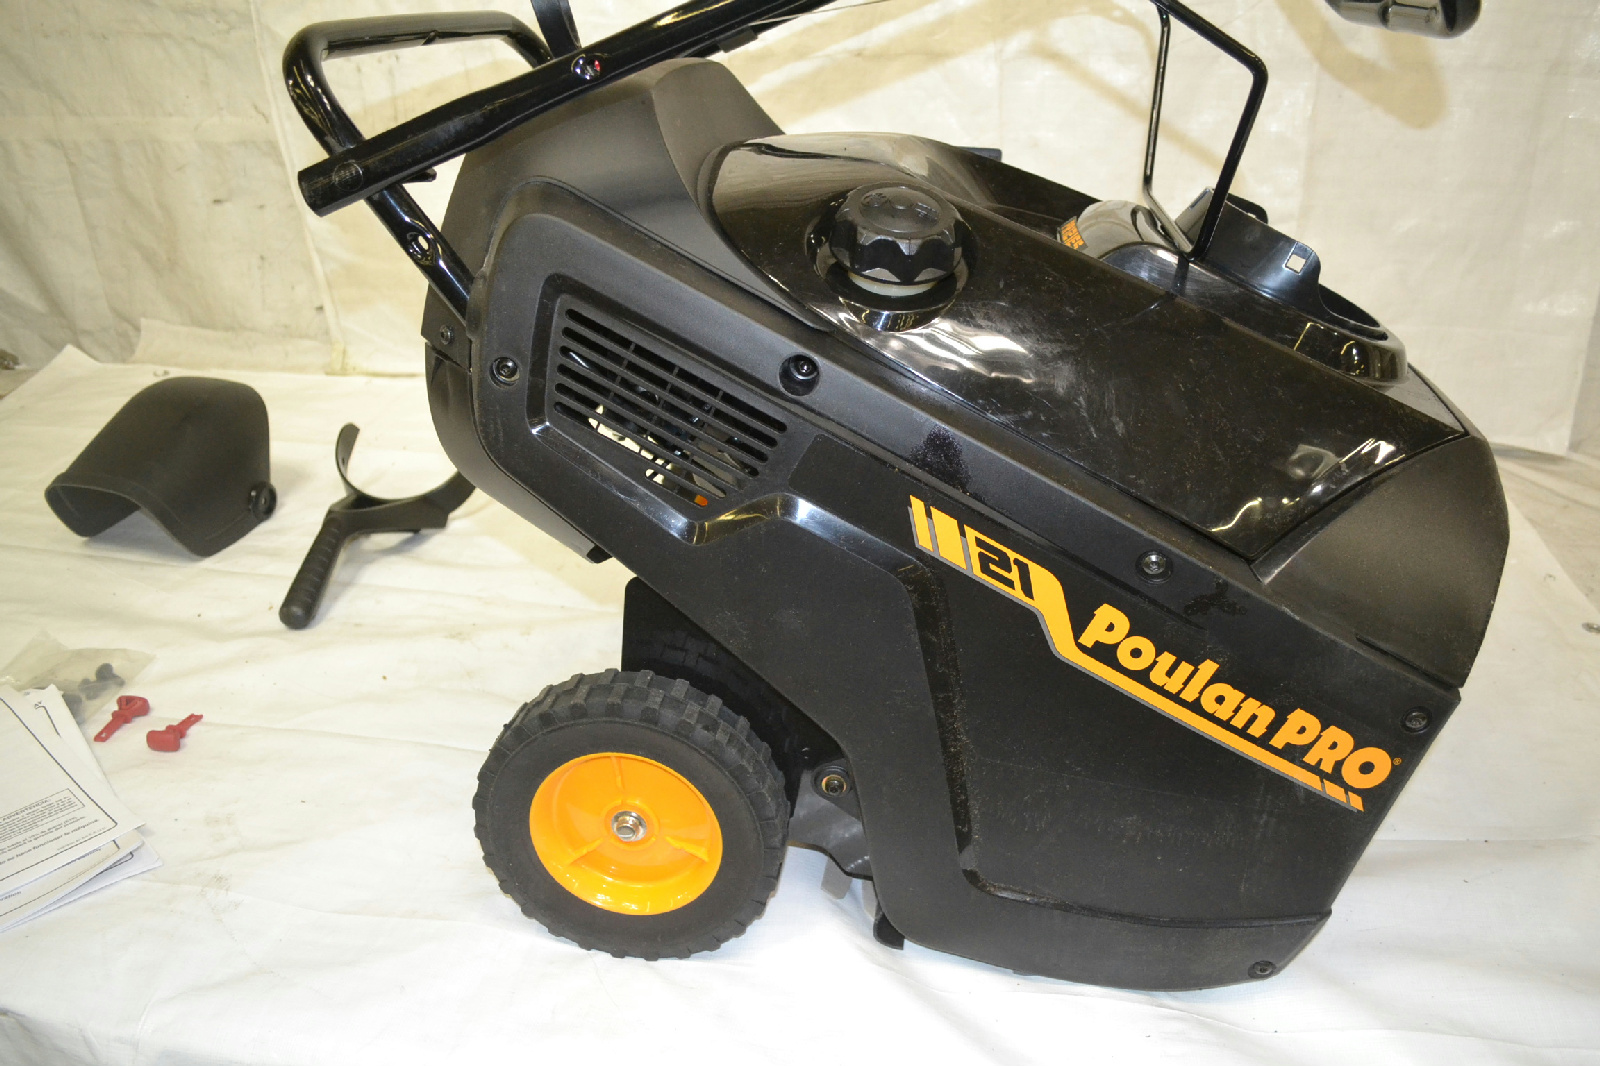 poulan singles This snow thrower review finds the poulan pro pr521 21-inch 136cc single stage snow thrower to be a good choice for basic snow clearing it is simple and works well.